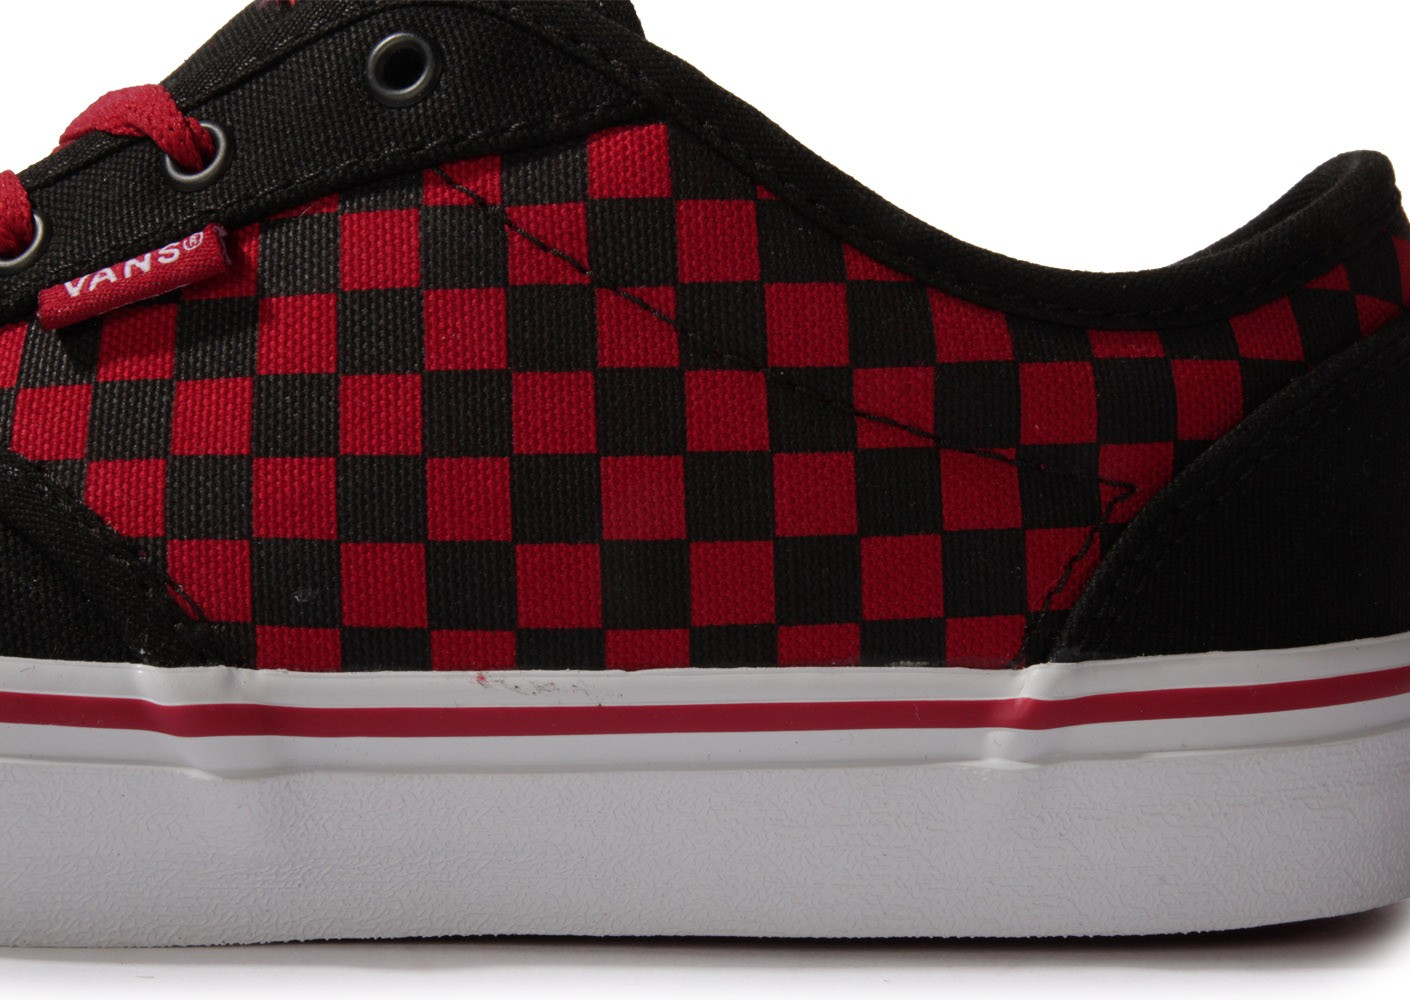 Vans Atwood Junior Damier Rouge - Chaussures Chaussures - Chausport